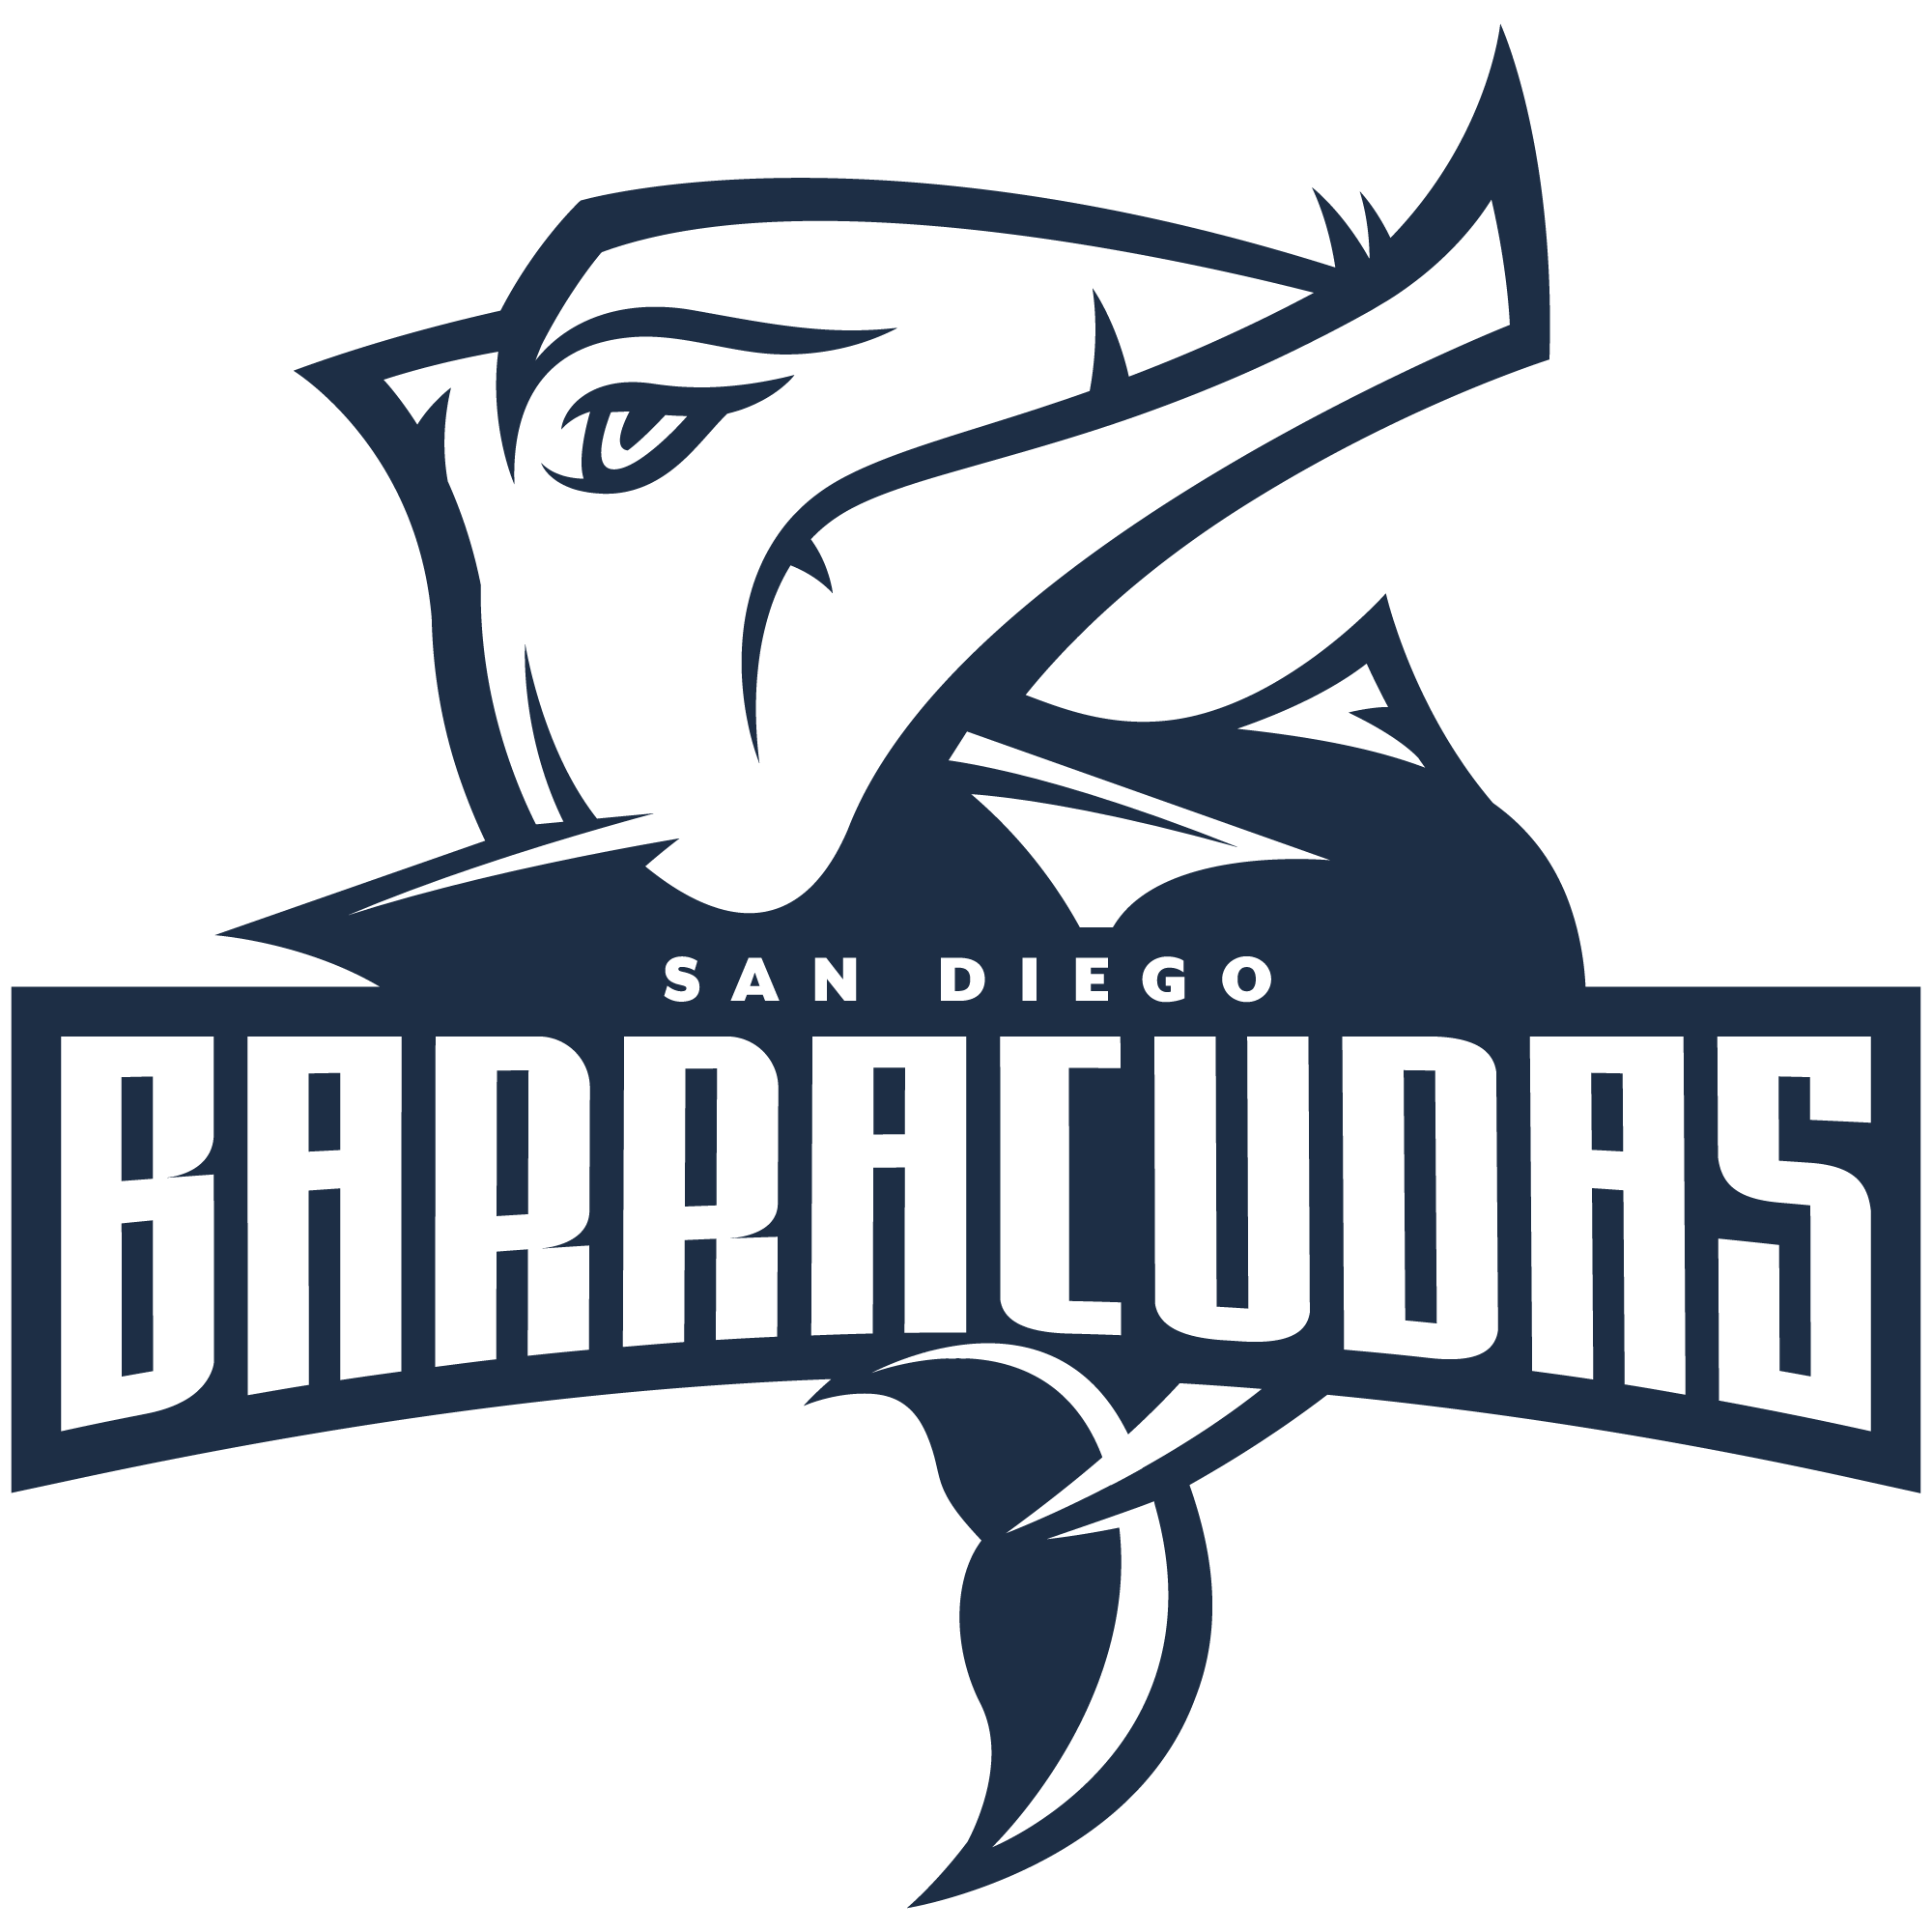 SanDiegoBarracudas.png